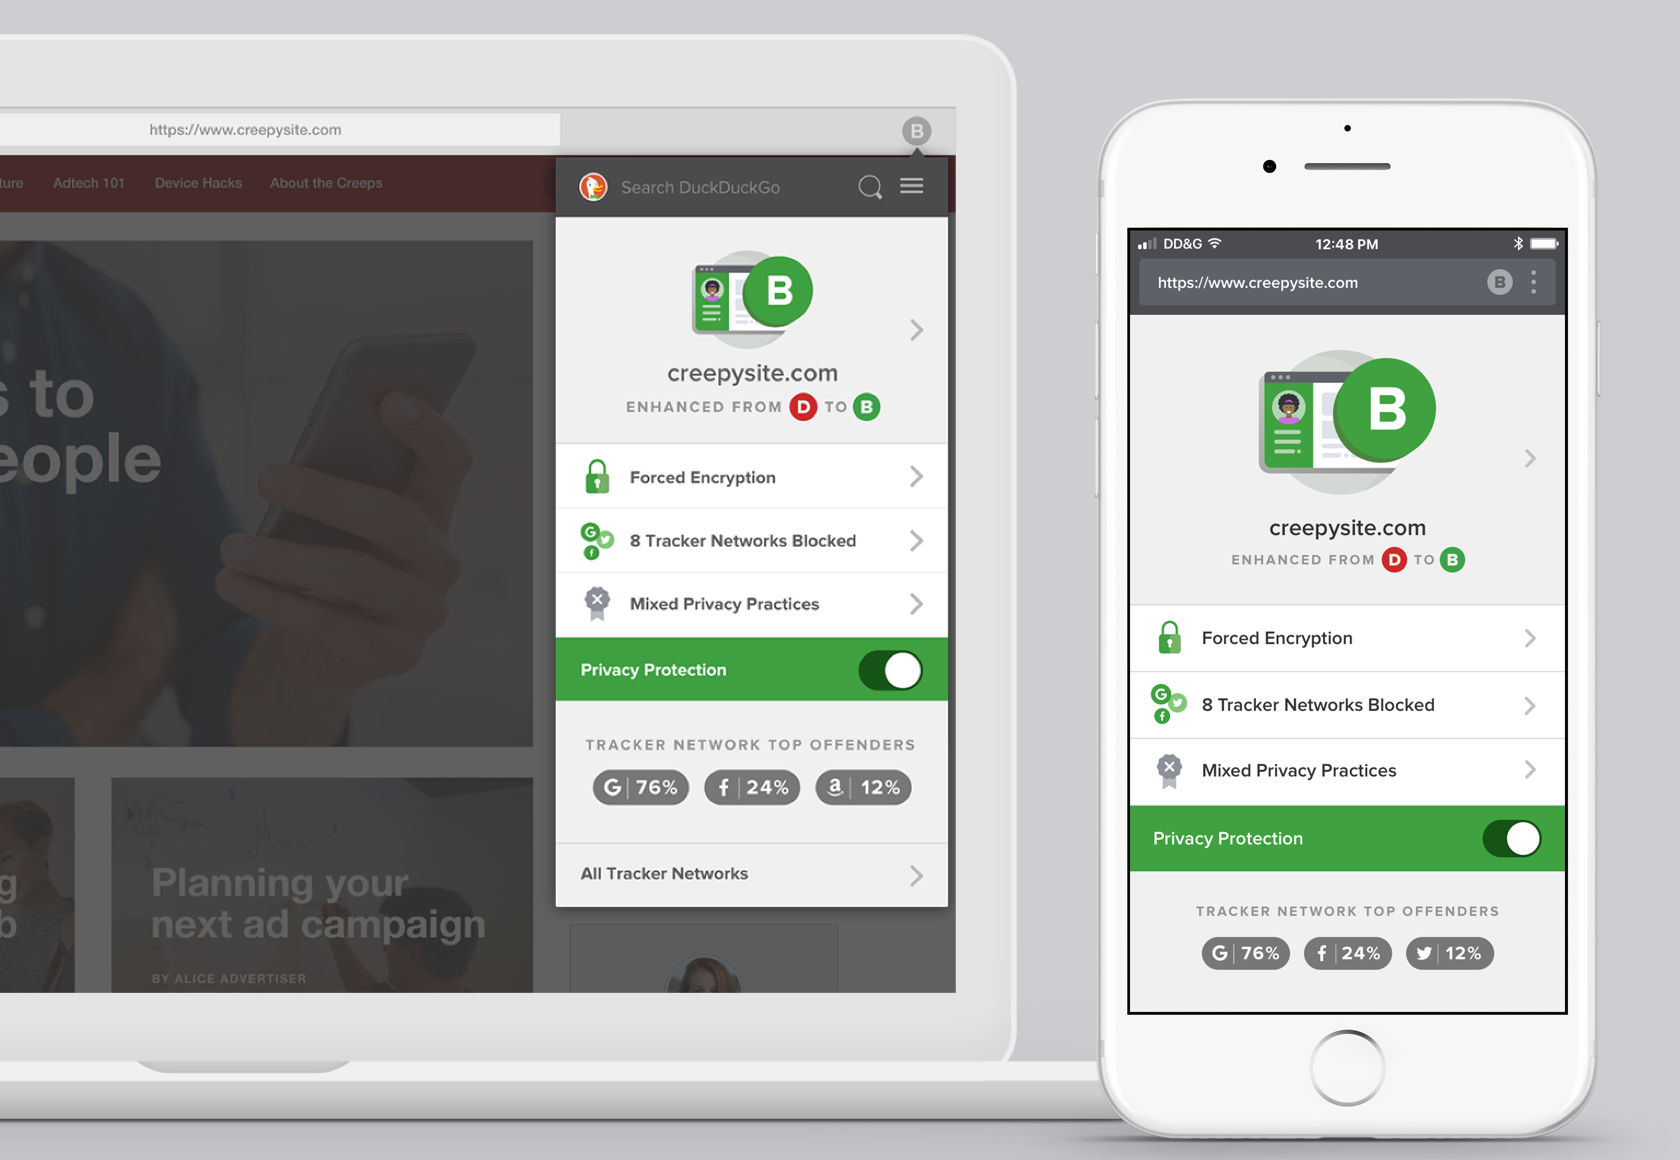 DuckDuckGo's New Privacy Tools Help Keep You Safe Around the Web 14